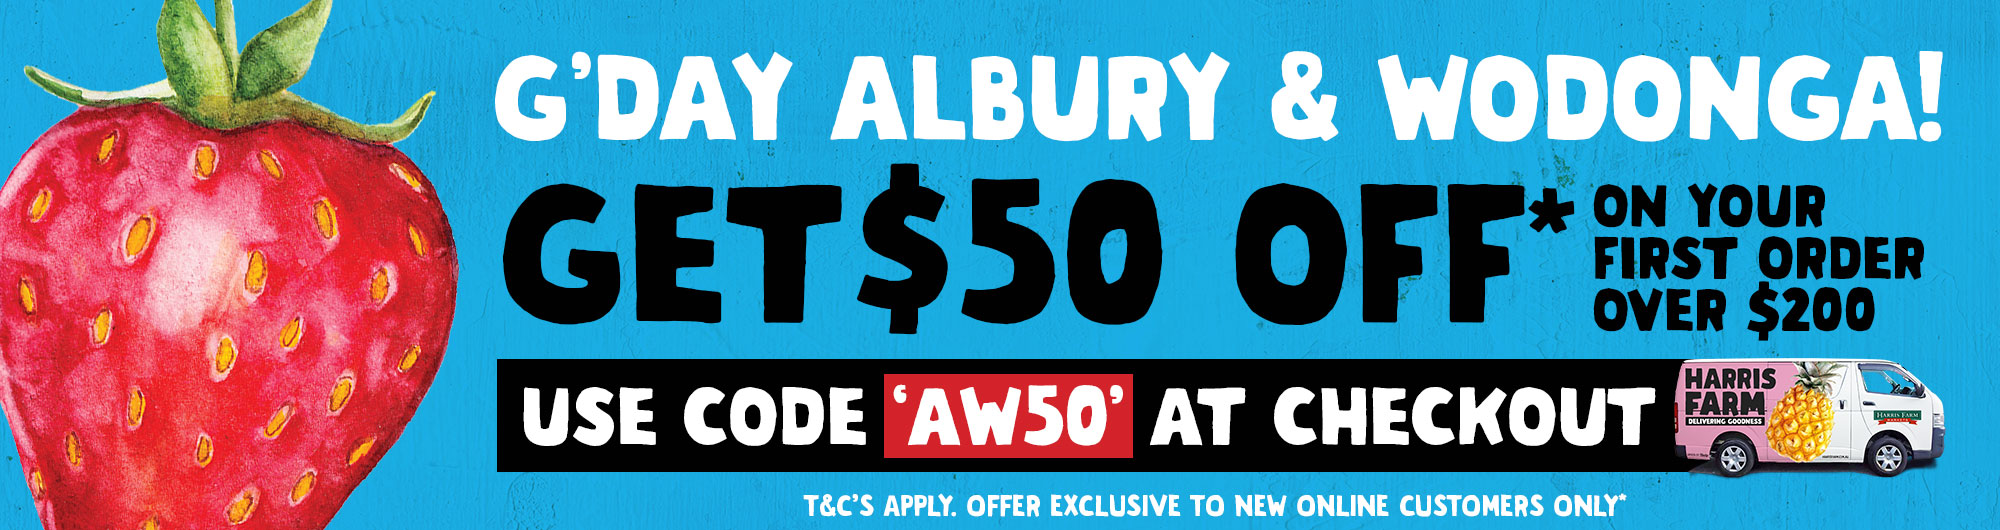 Harris Farm Online Grocery Delivery and Albury Wodonga